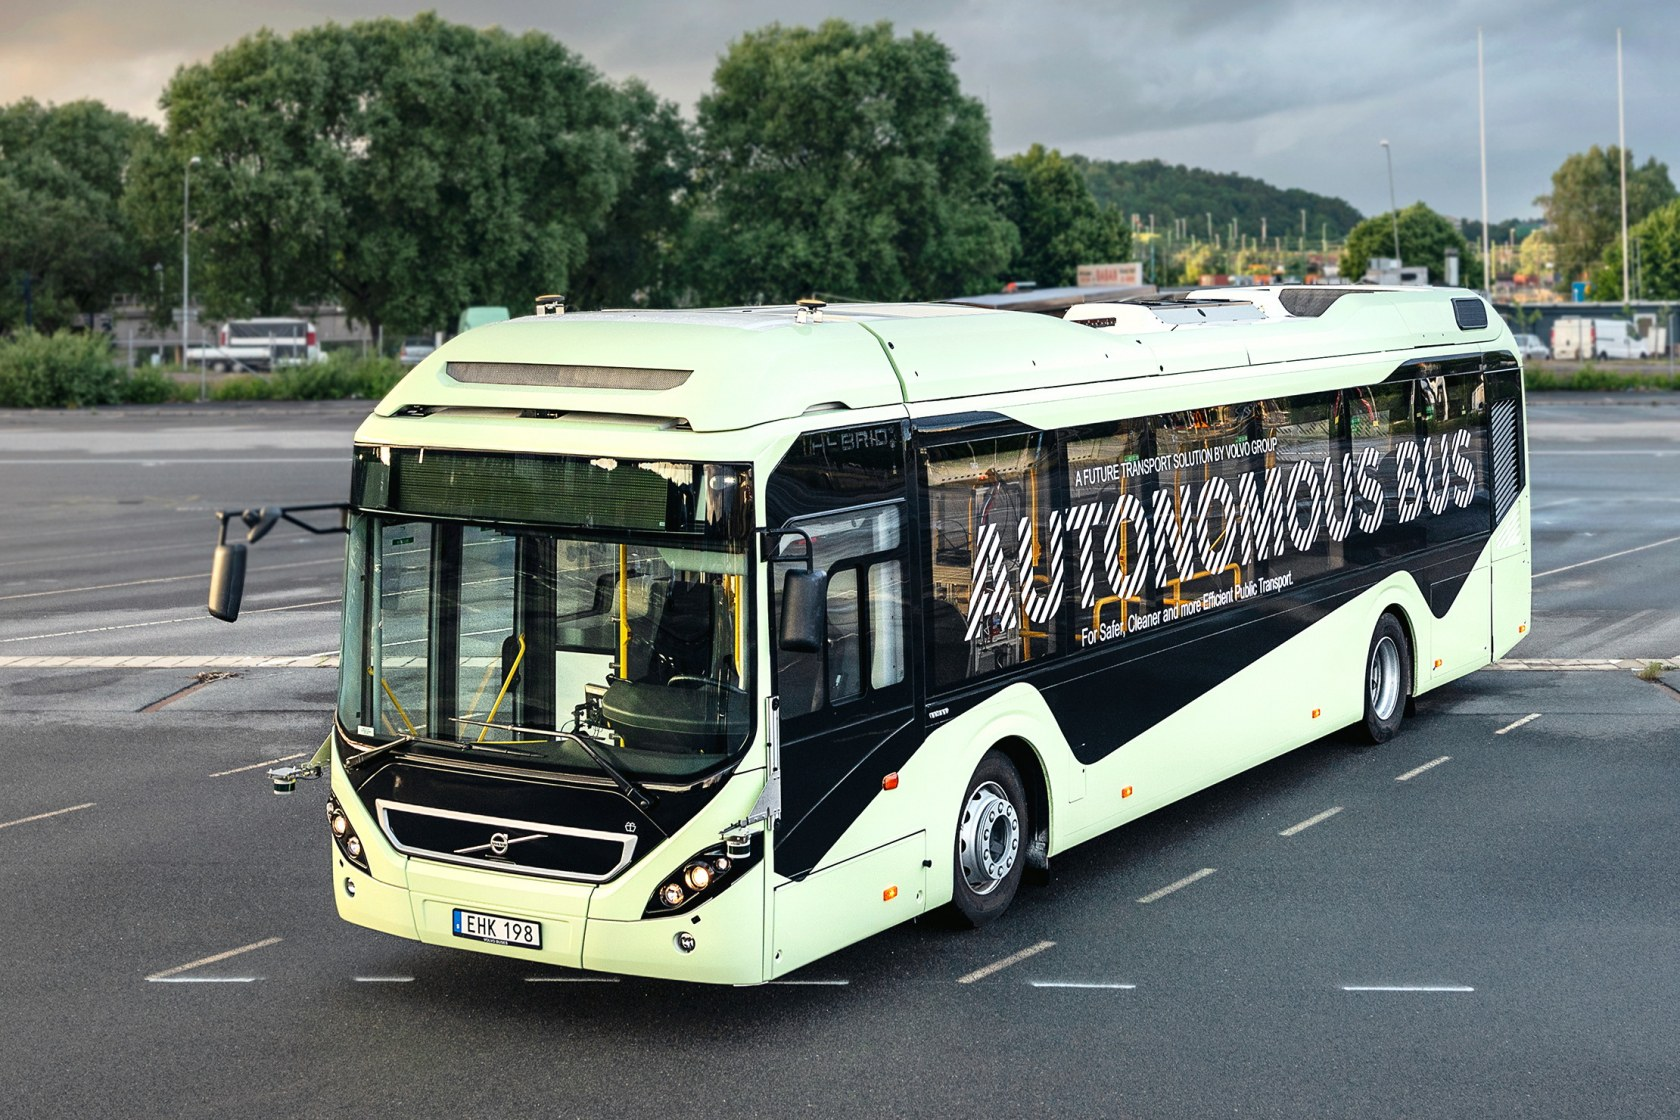 Singapore has partnered up with Volvo to test out fully-autonomous public buses